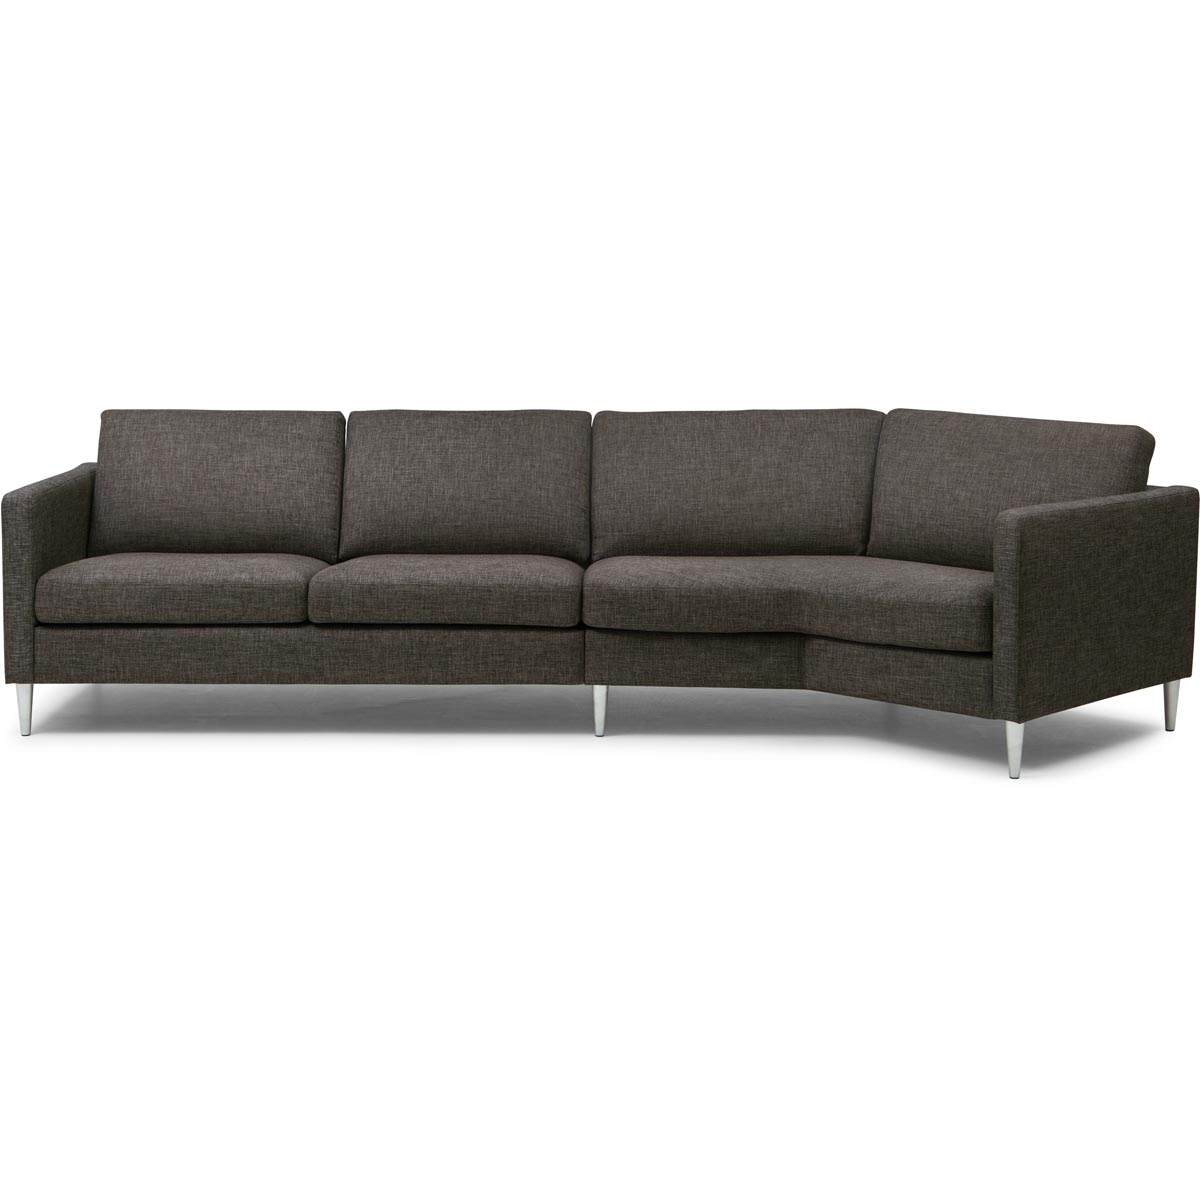 Vaddo-soffa-2-sits-S30-Delight-antracit